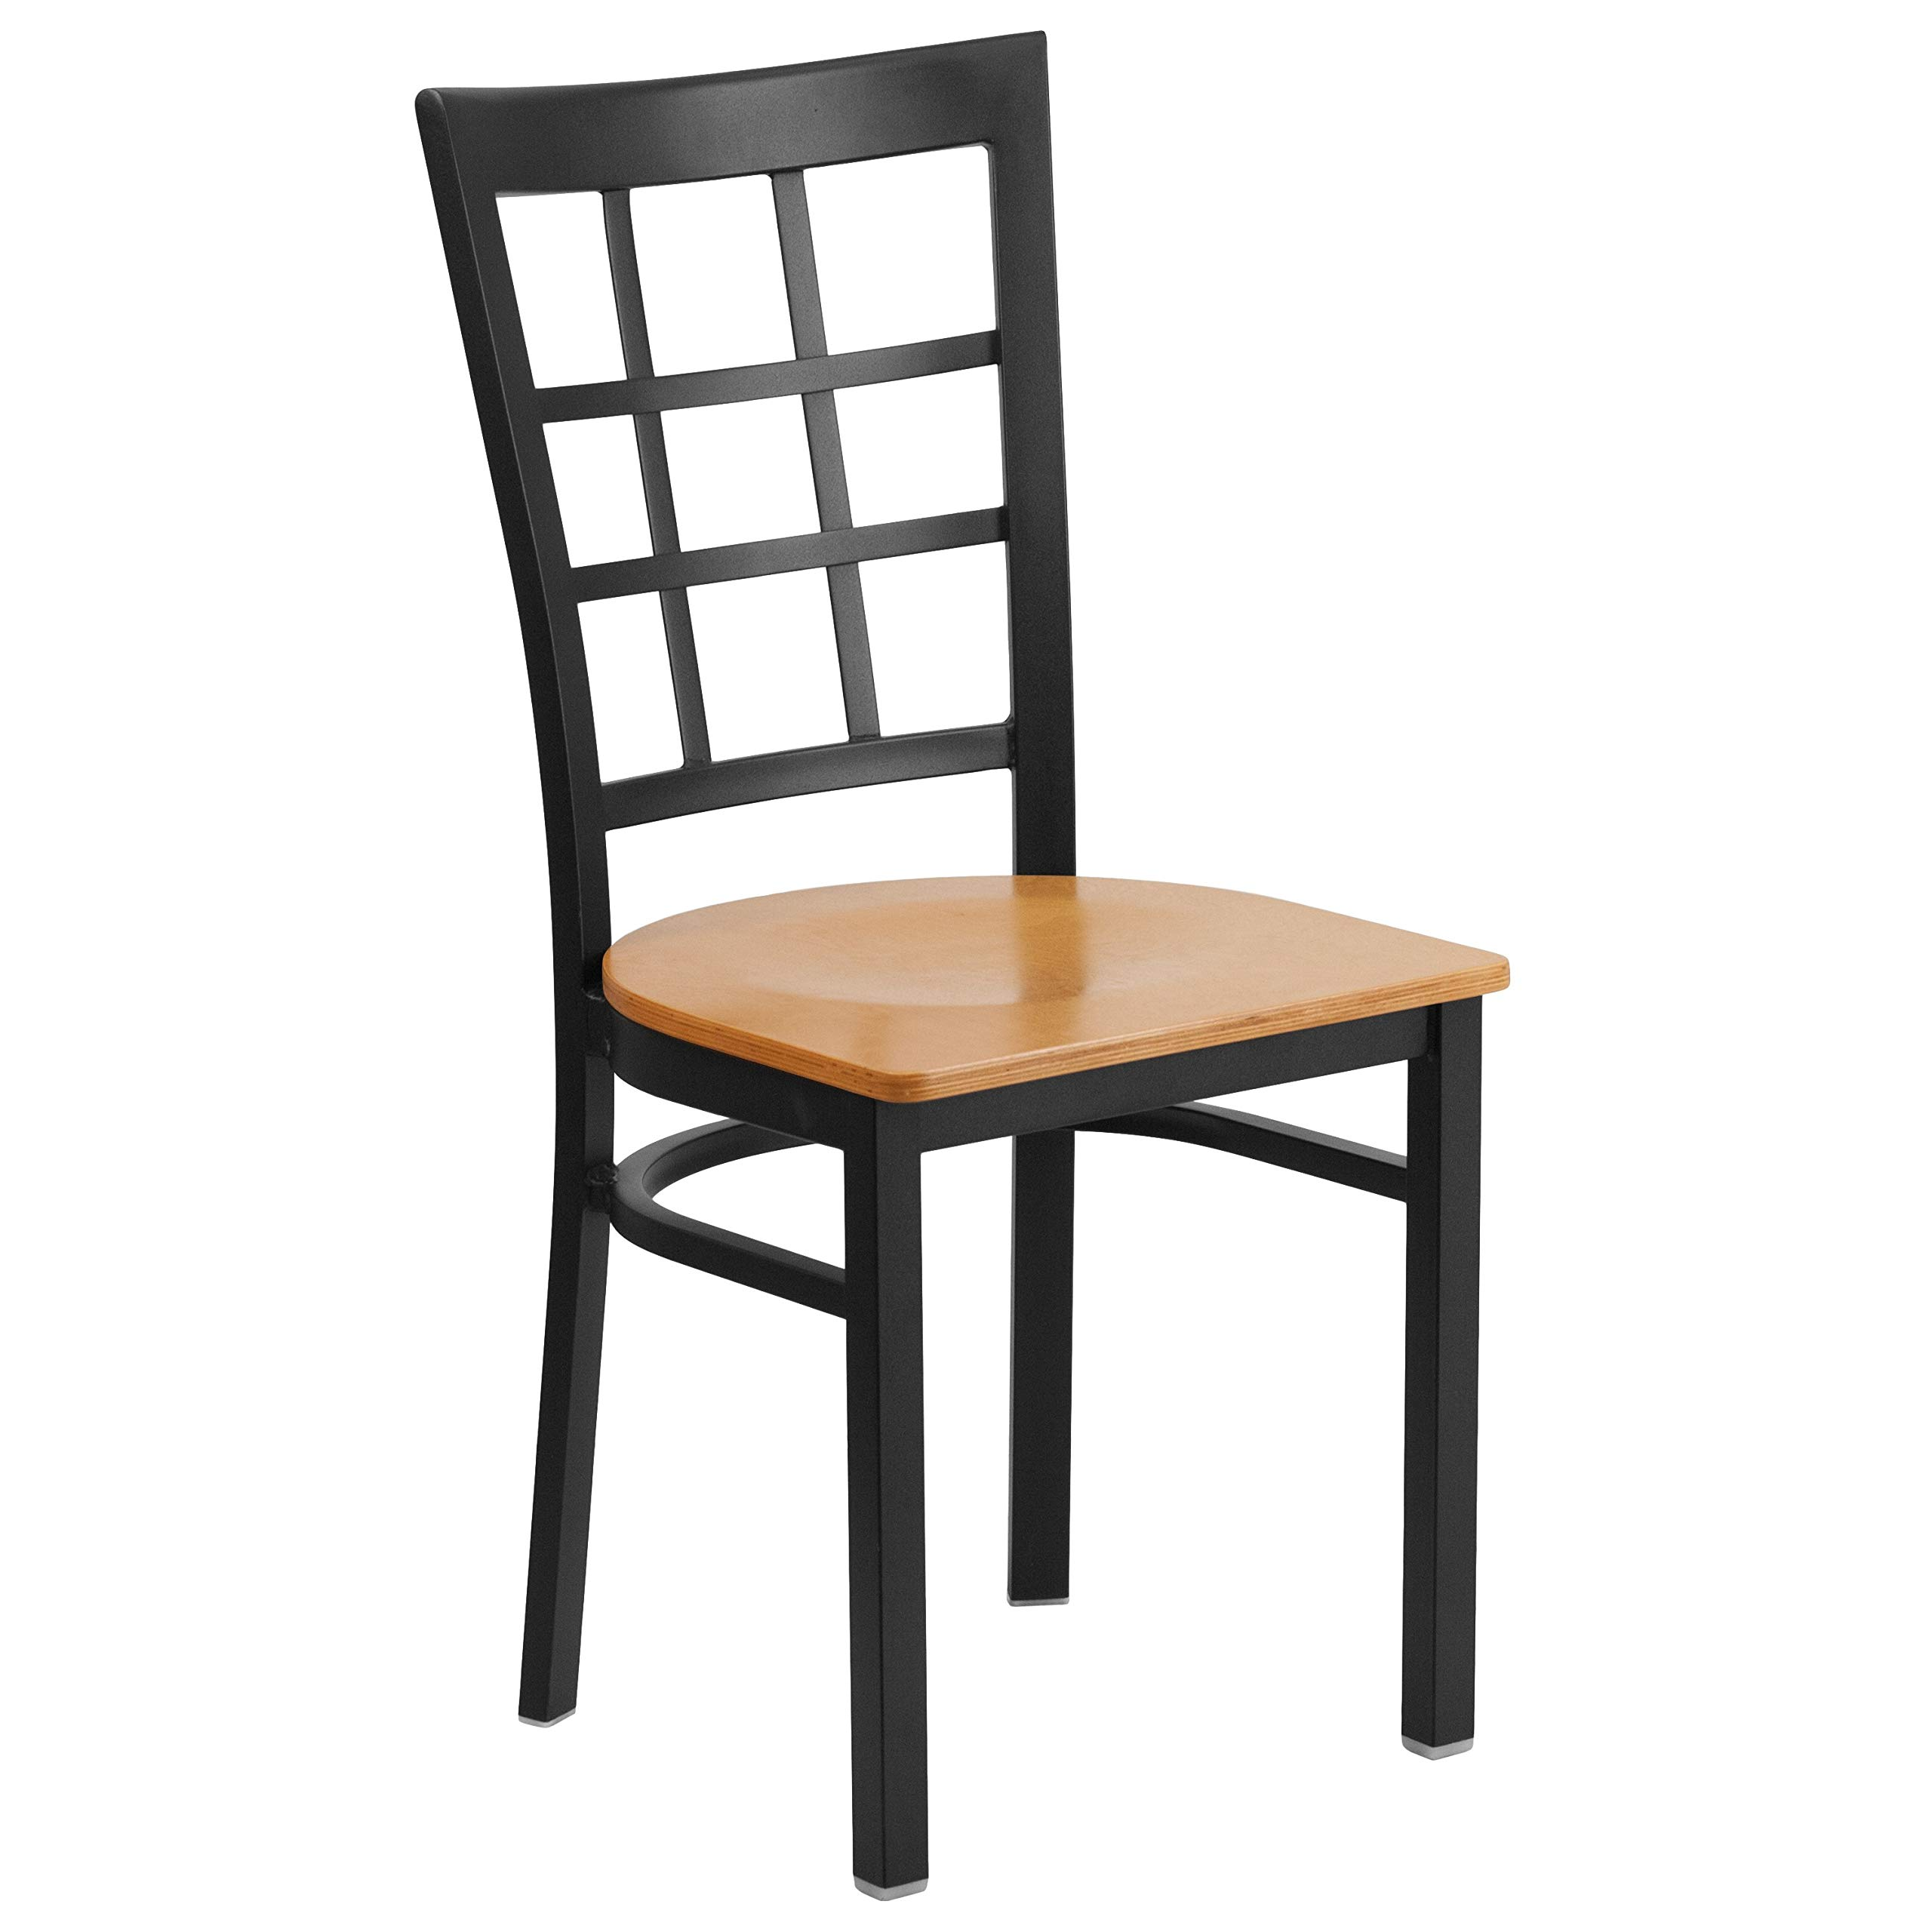 MFO Princeton Collection Black Window Back Metal Restaurant Chair - Natural Wood Seat